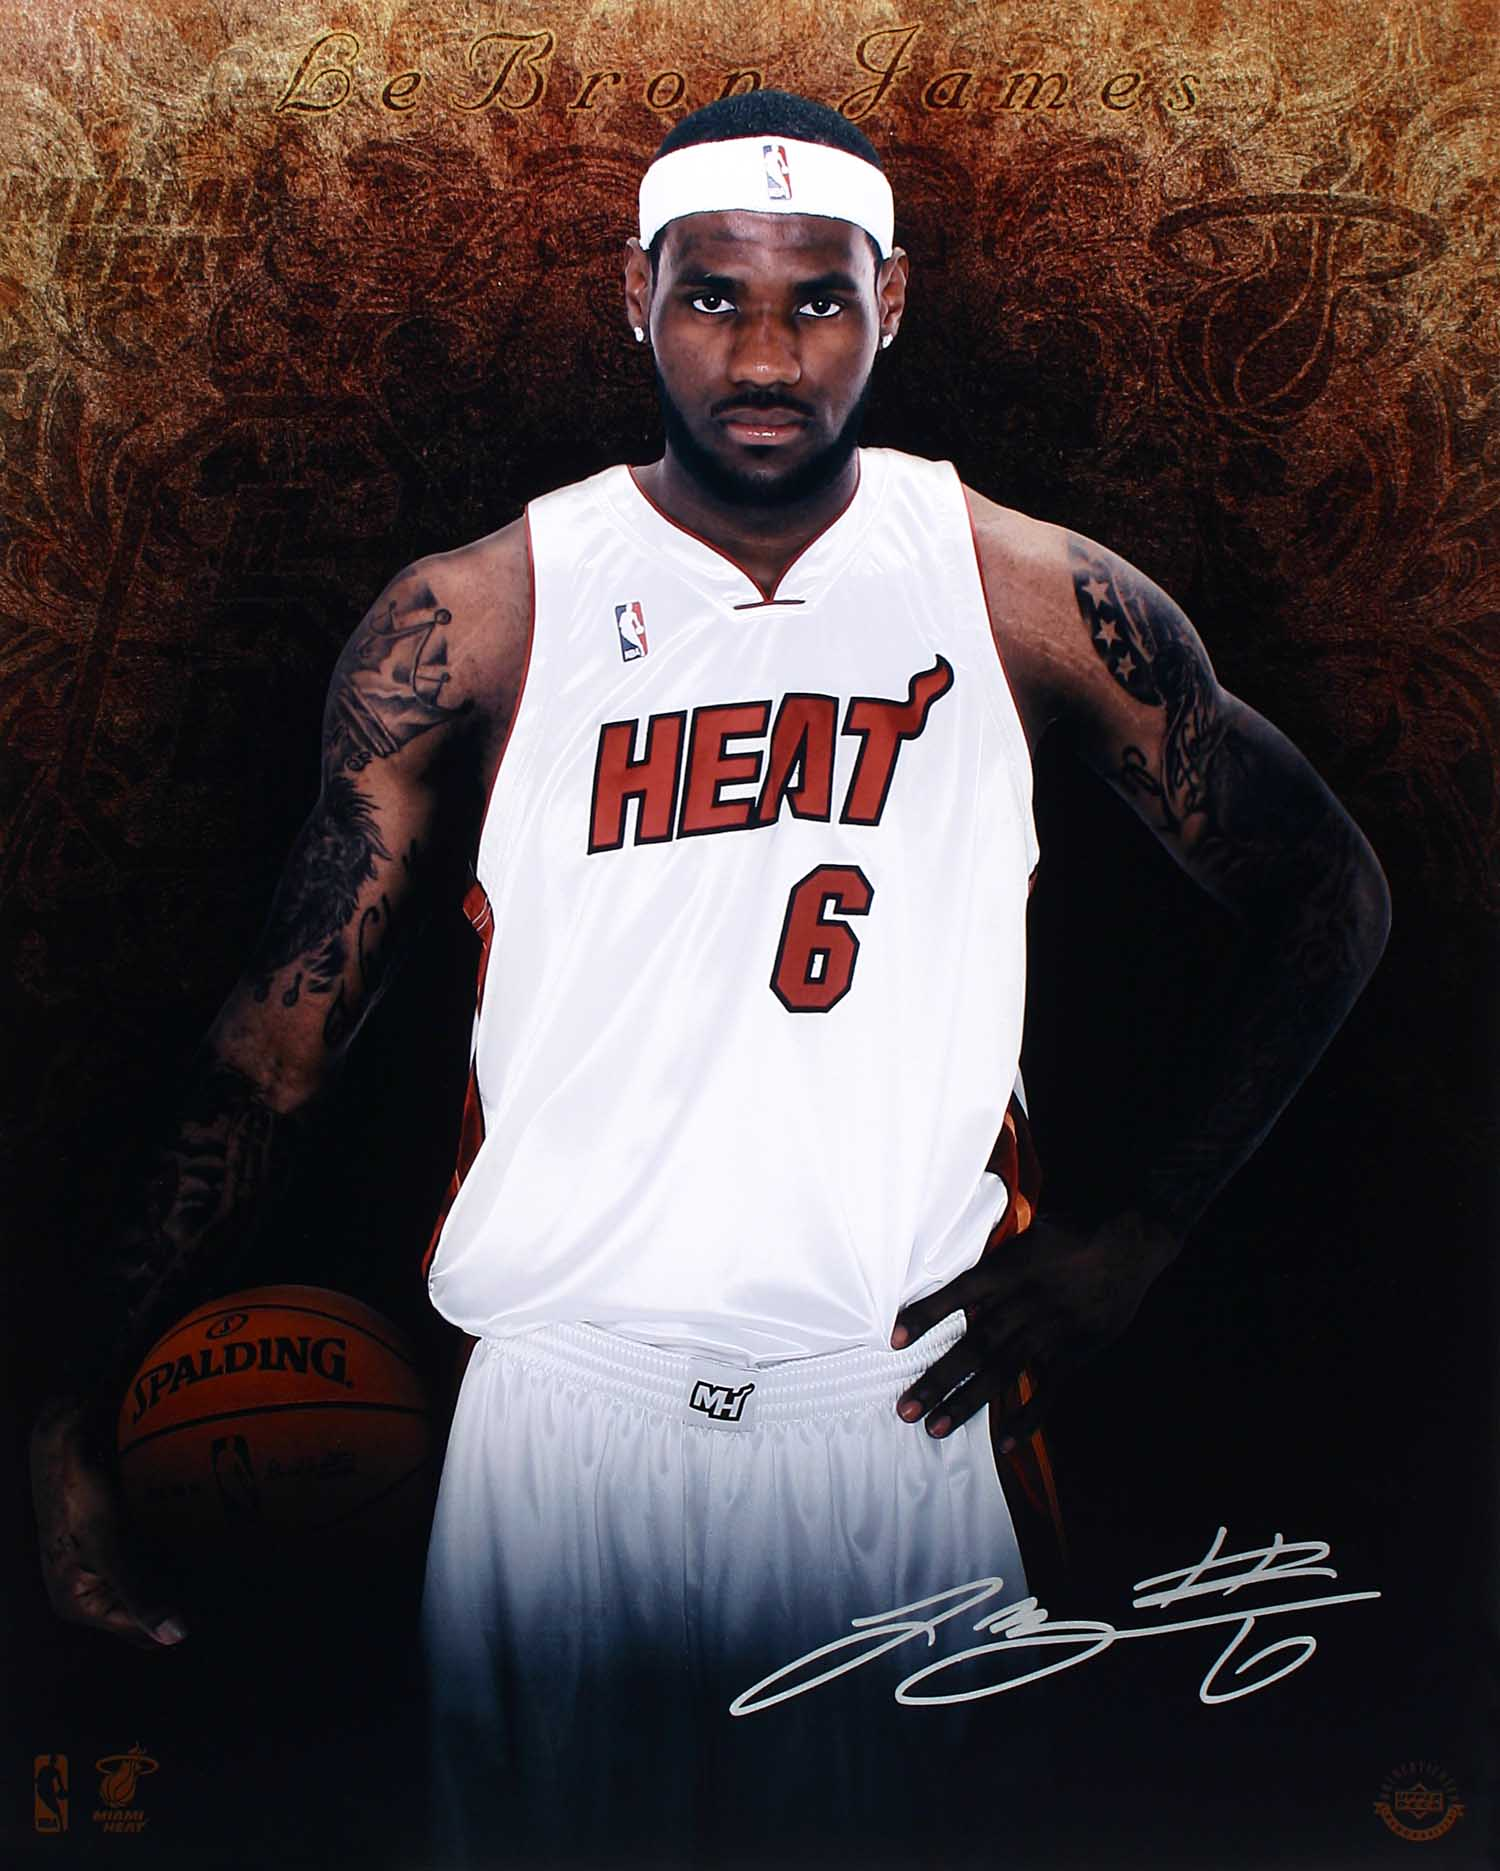 lebron james autograph - photo #41